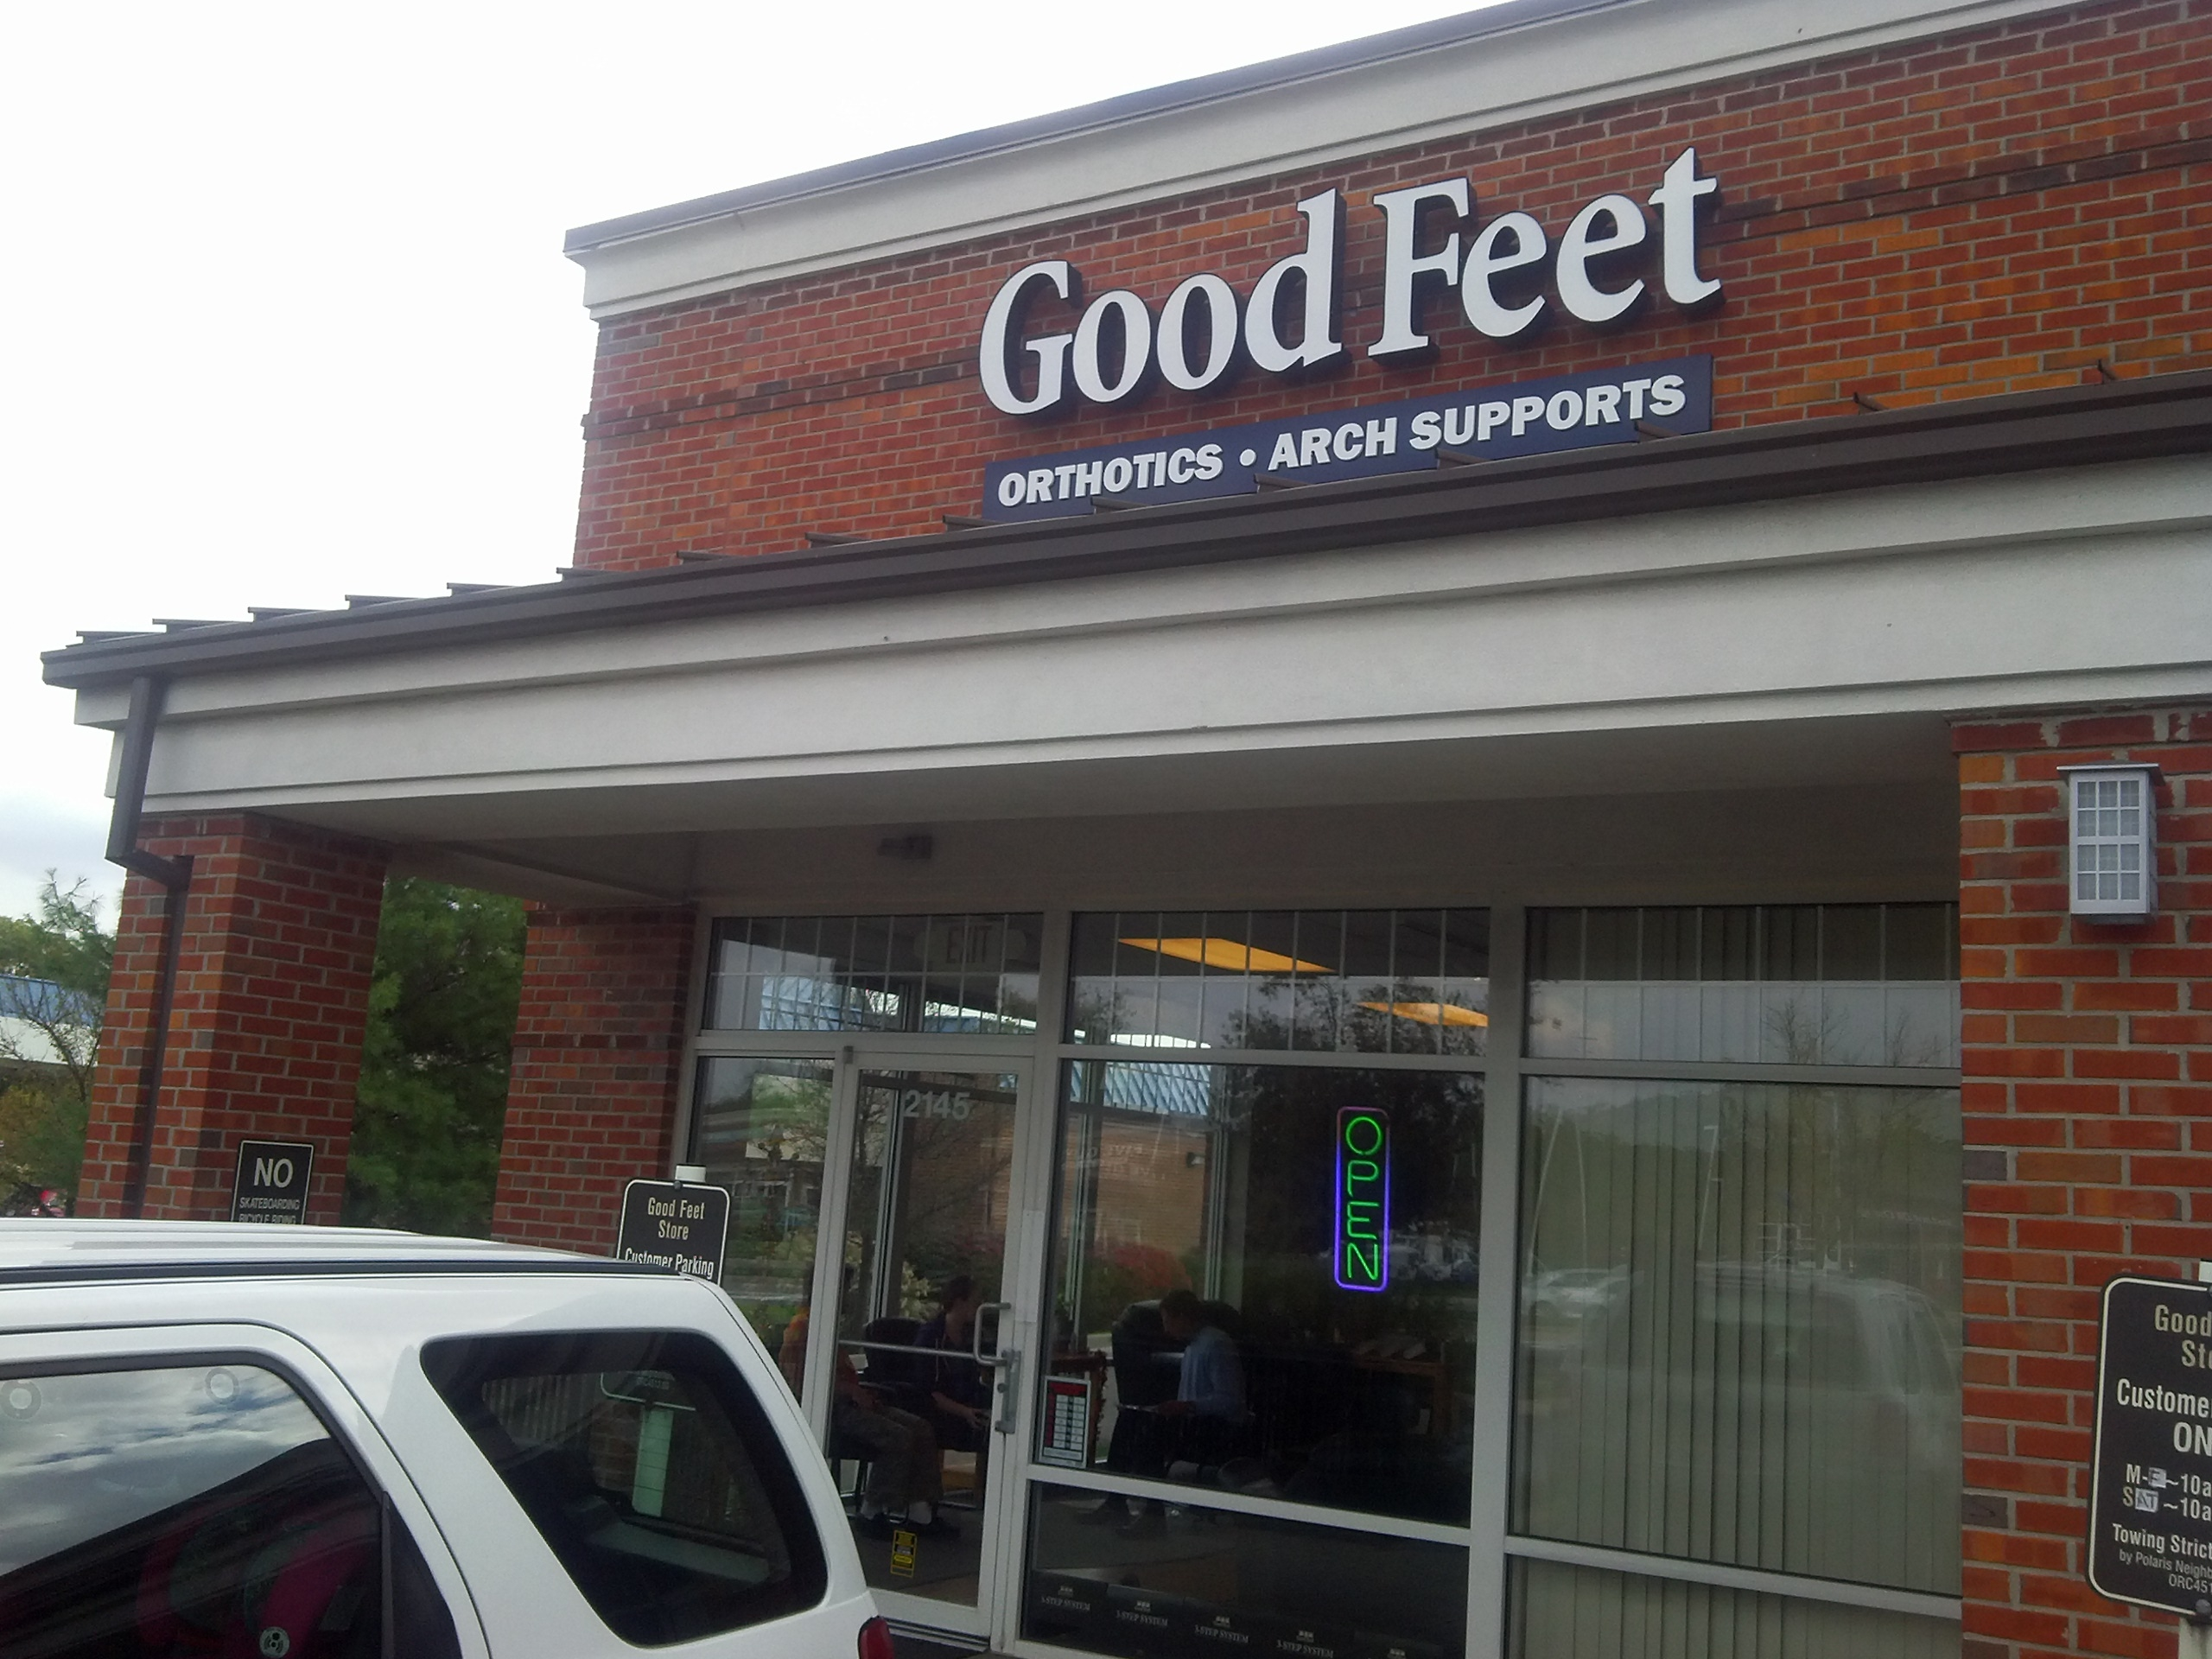 Good feet store coupons